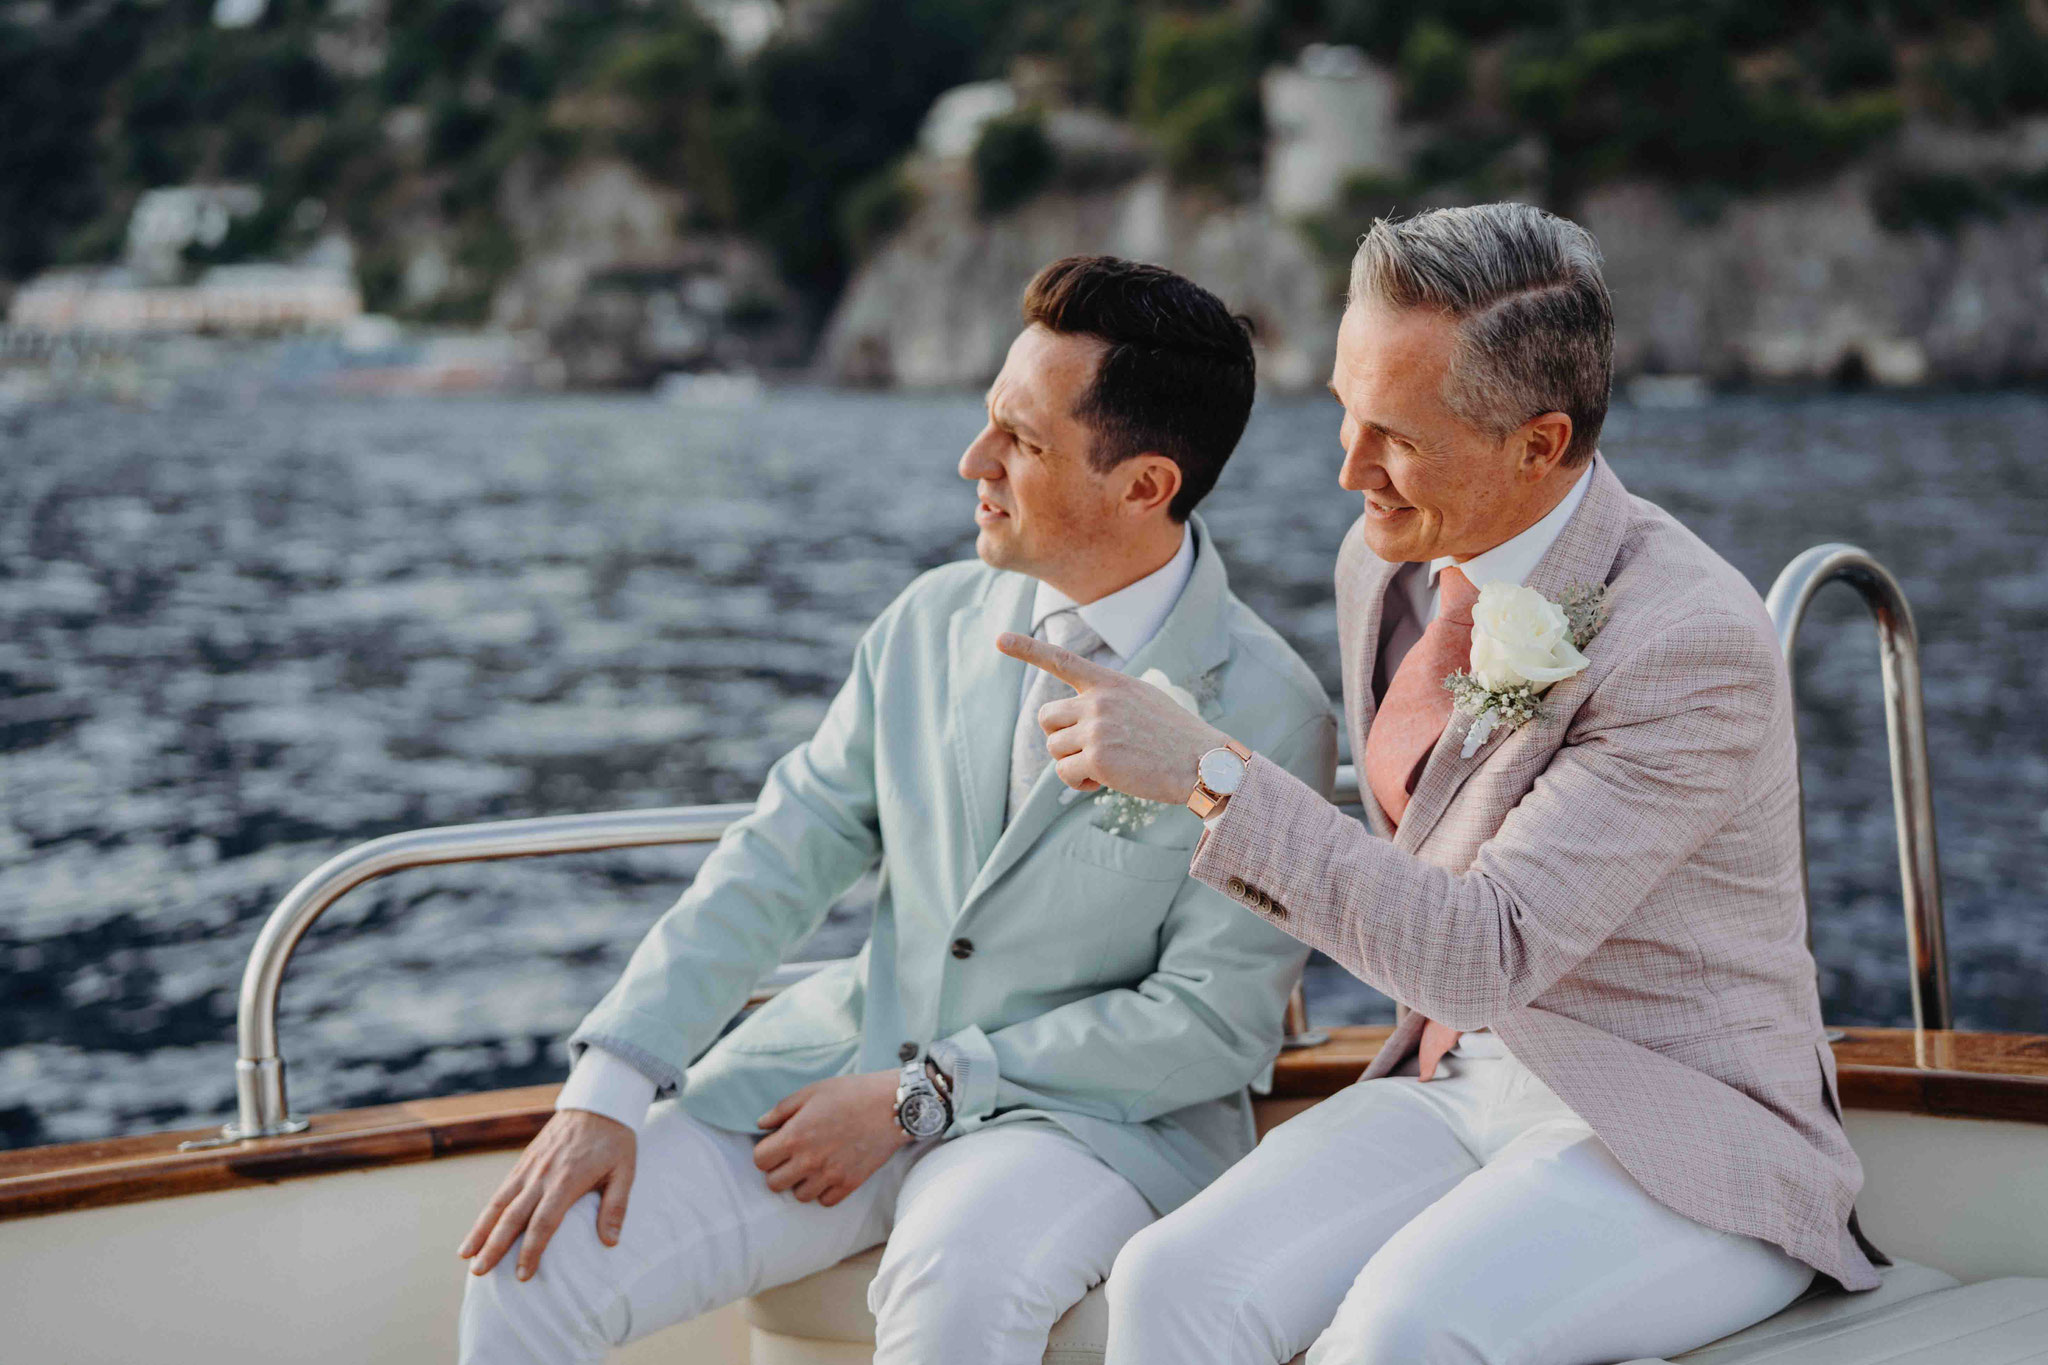 gay_wedding_positano_3